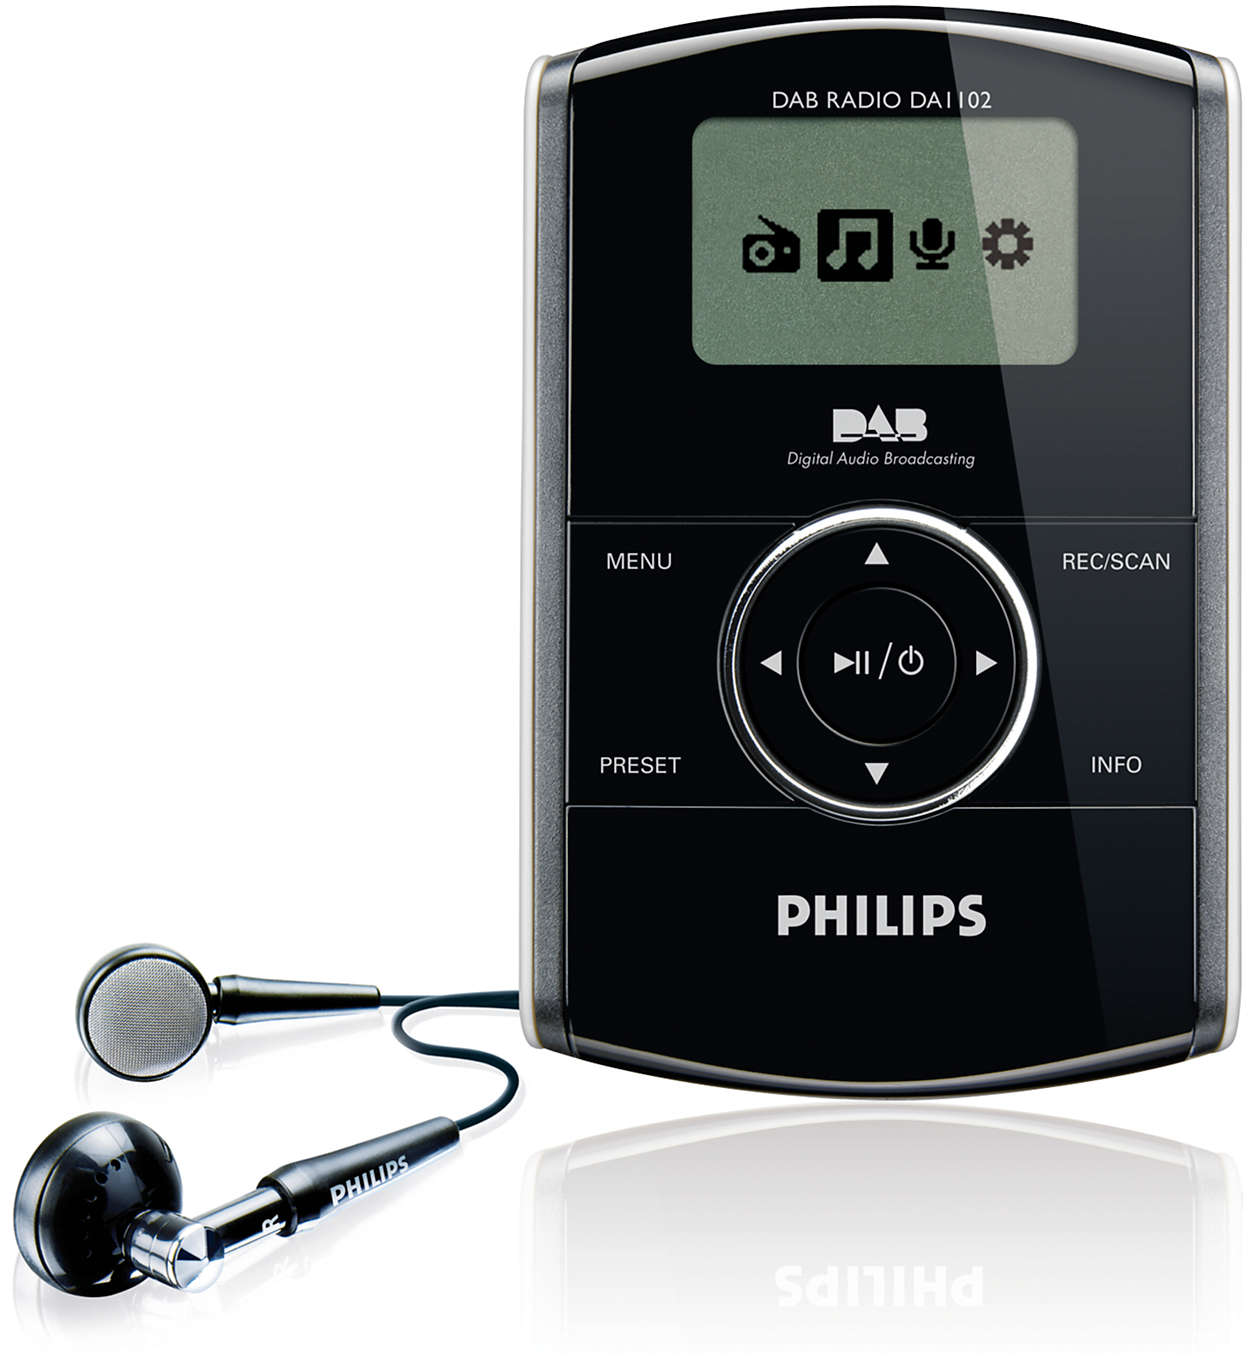 portable radio da1102 05 philips. Black Bedroom Furniture Sets. Home Design Ideas